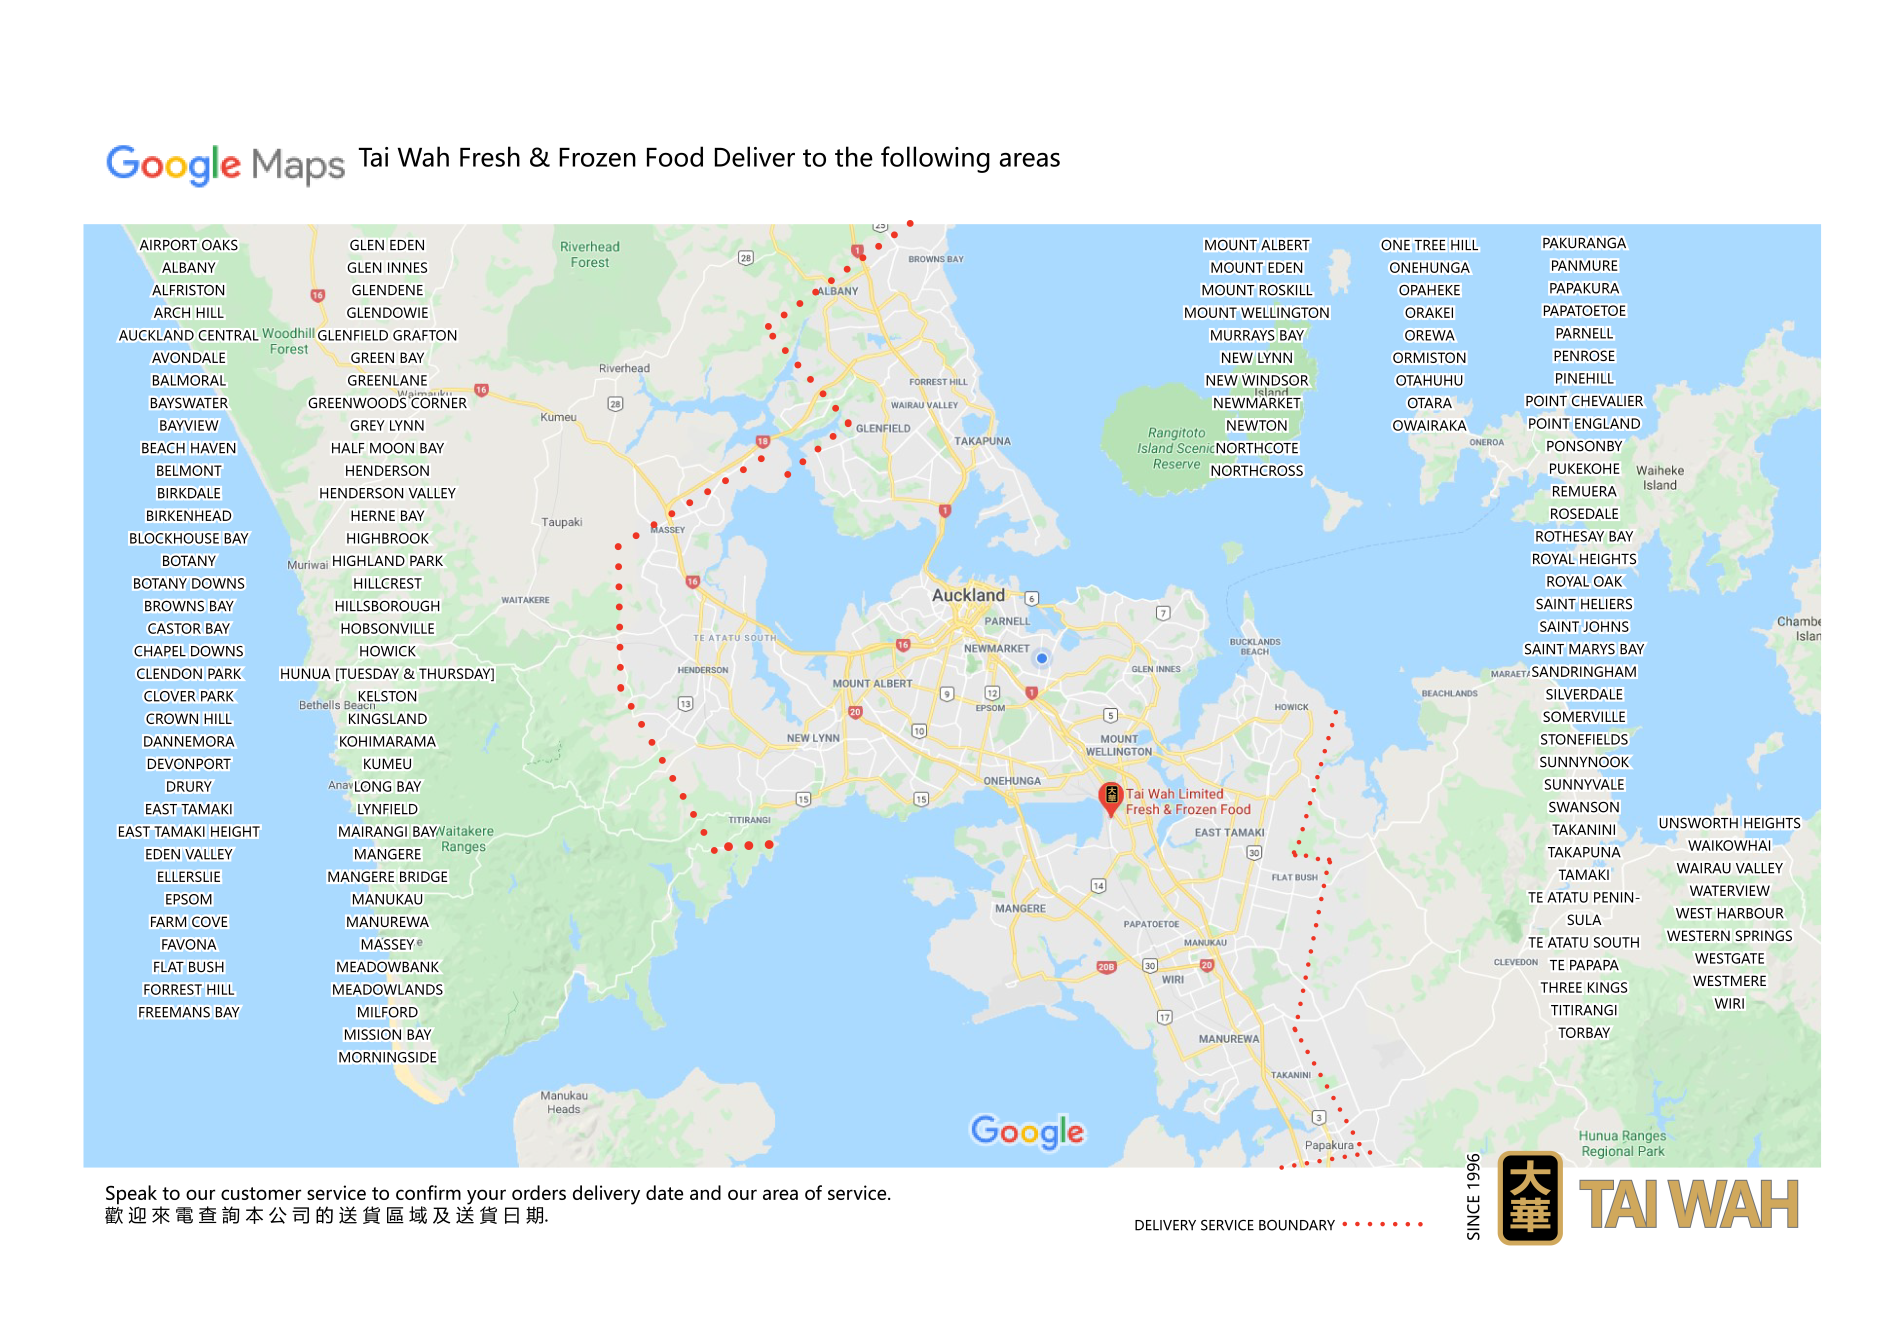 TW delivery areas